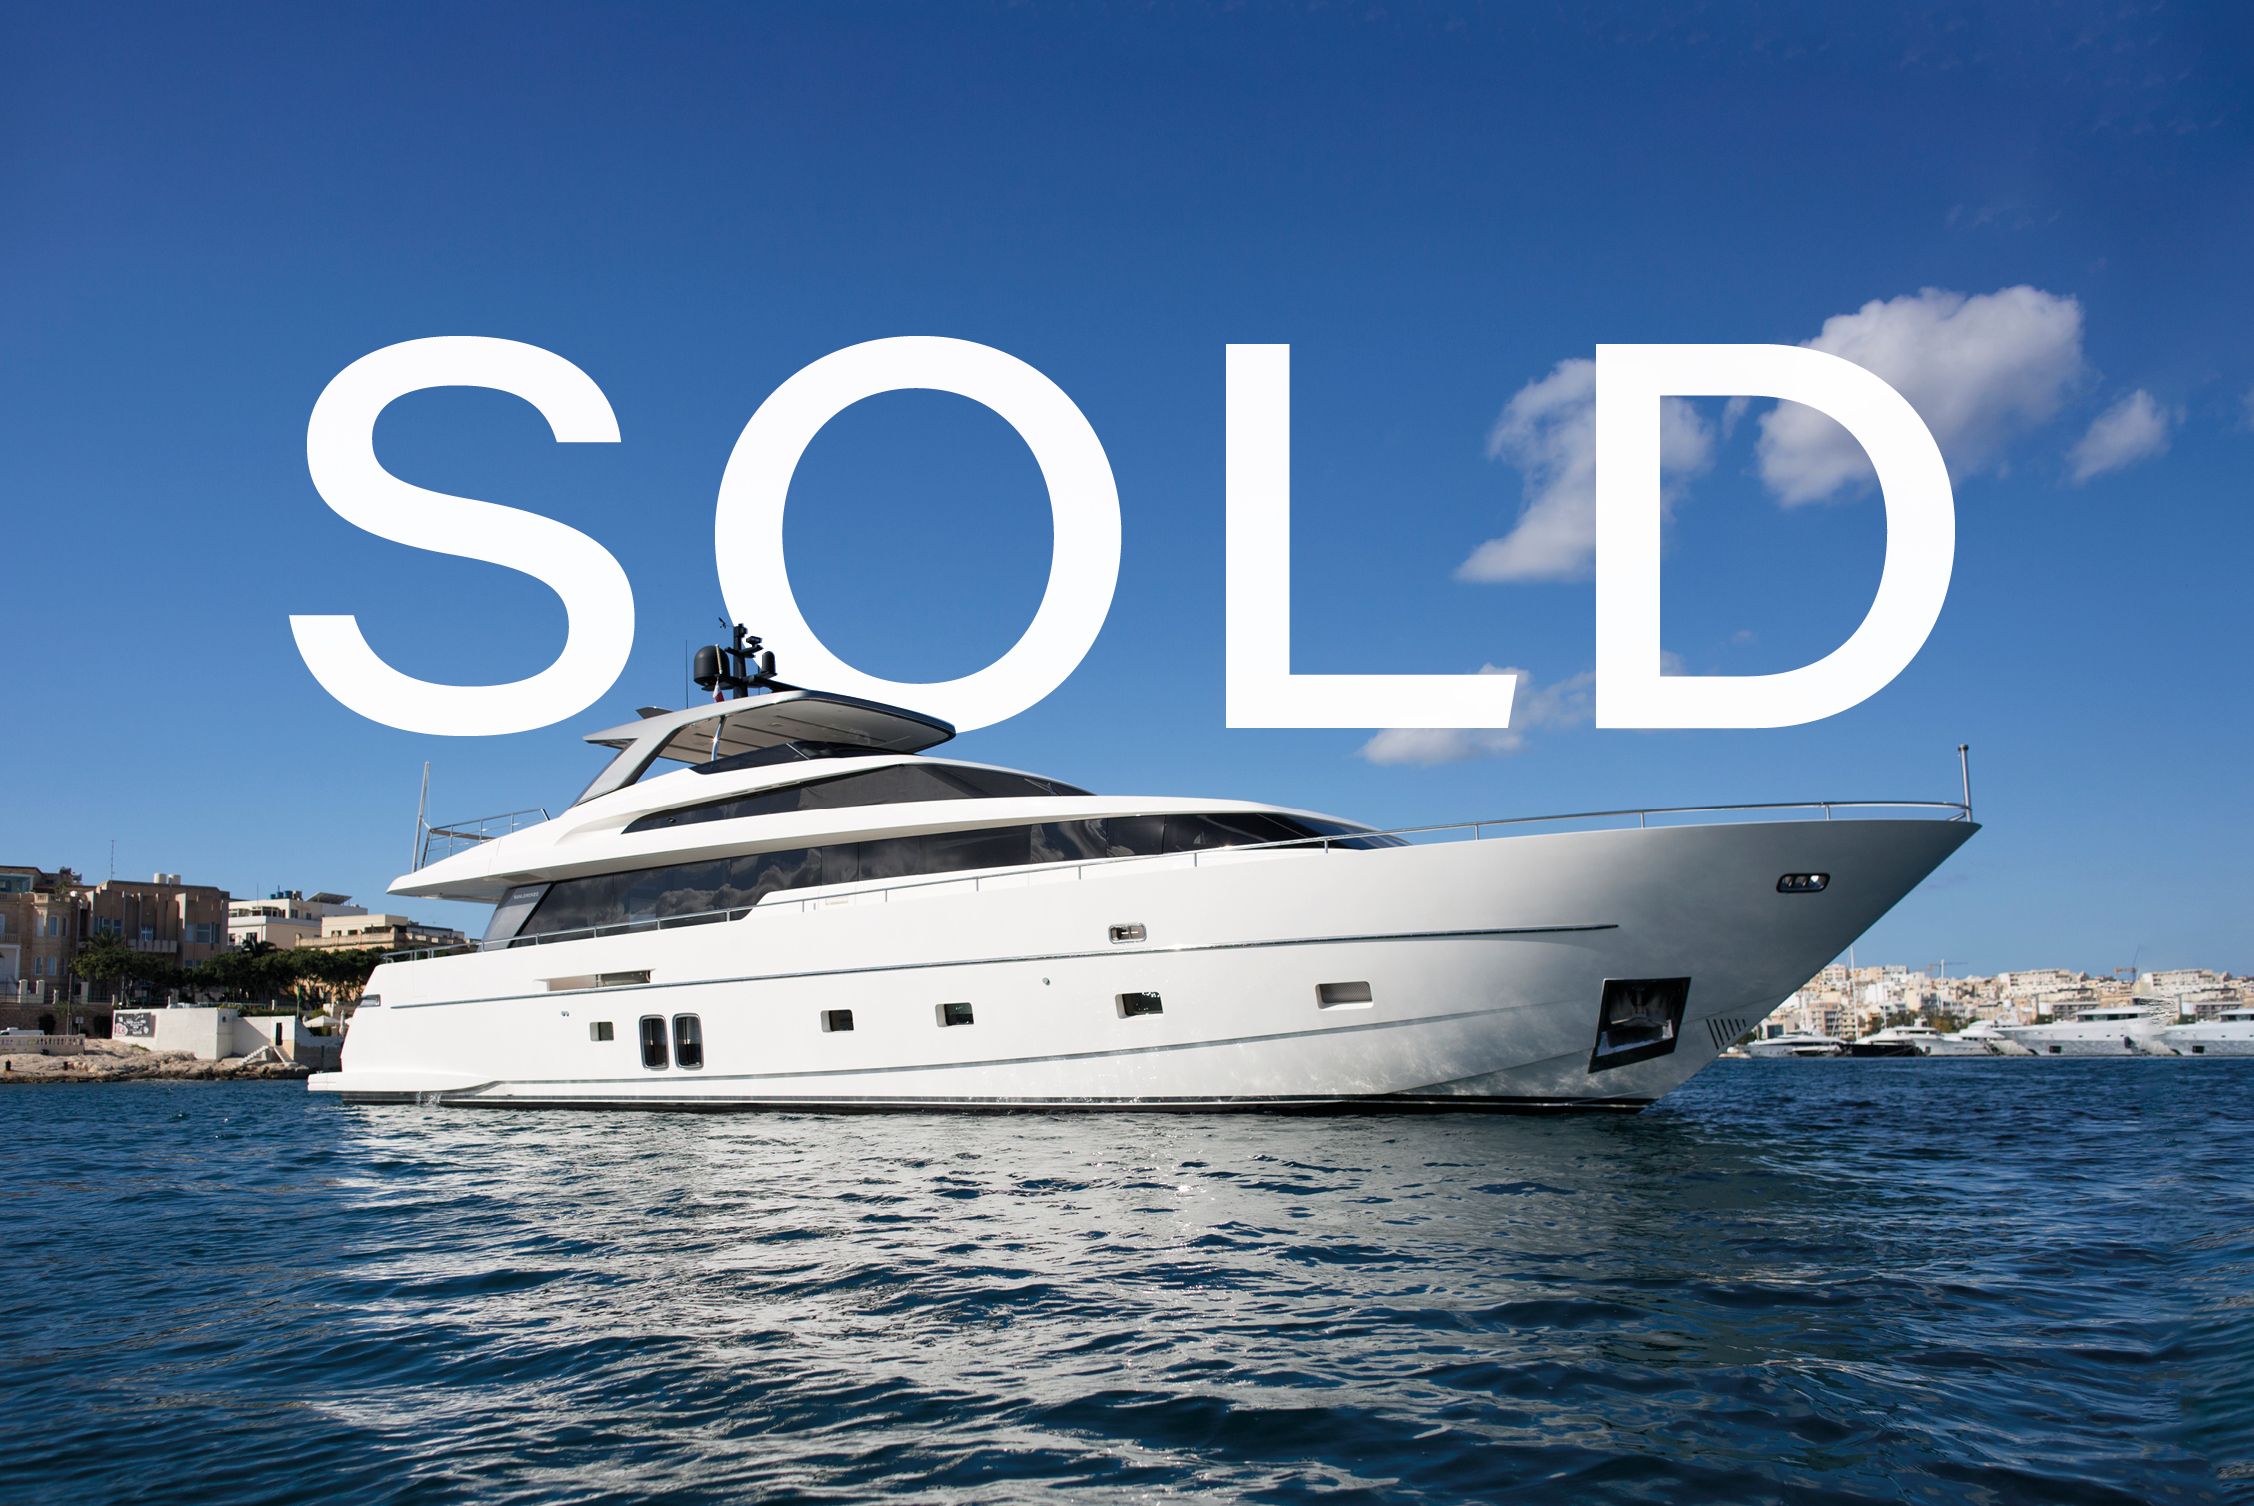 GB2 sold West Nautical